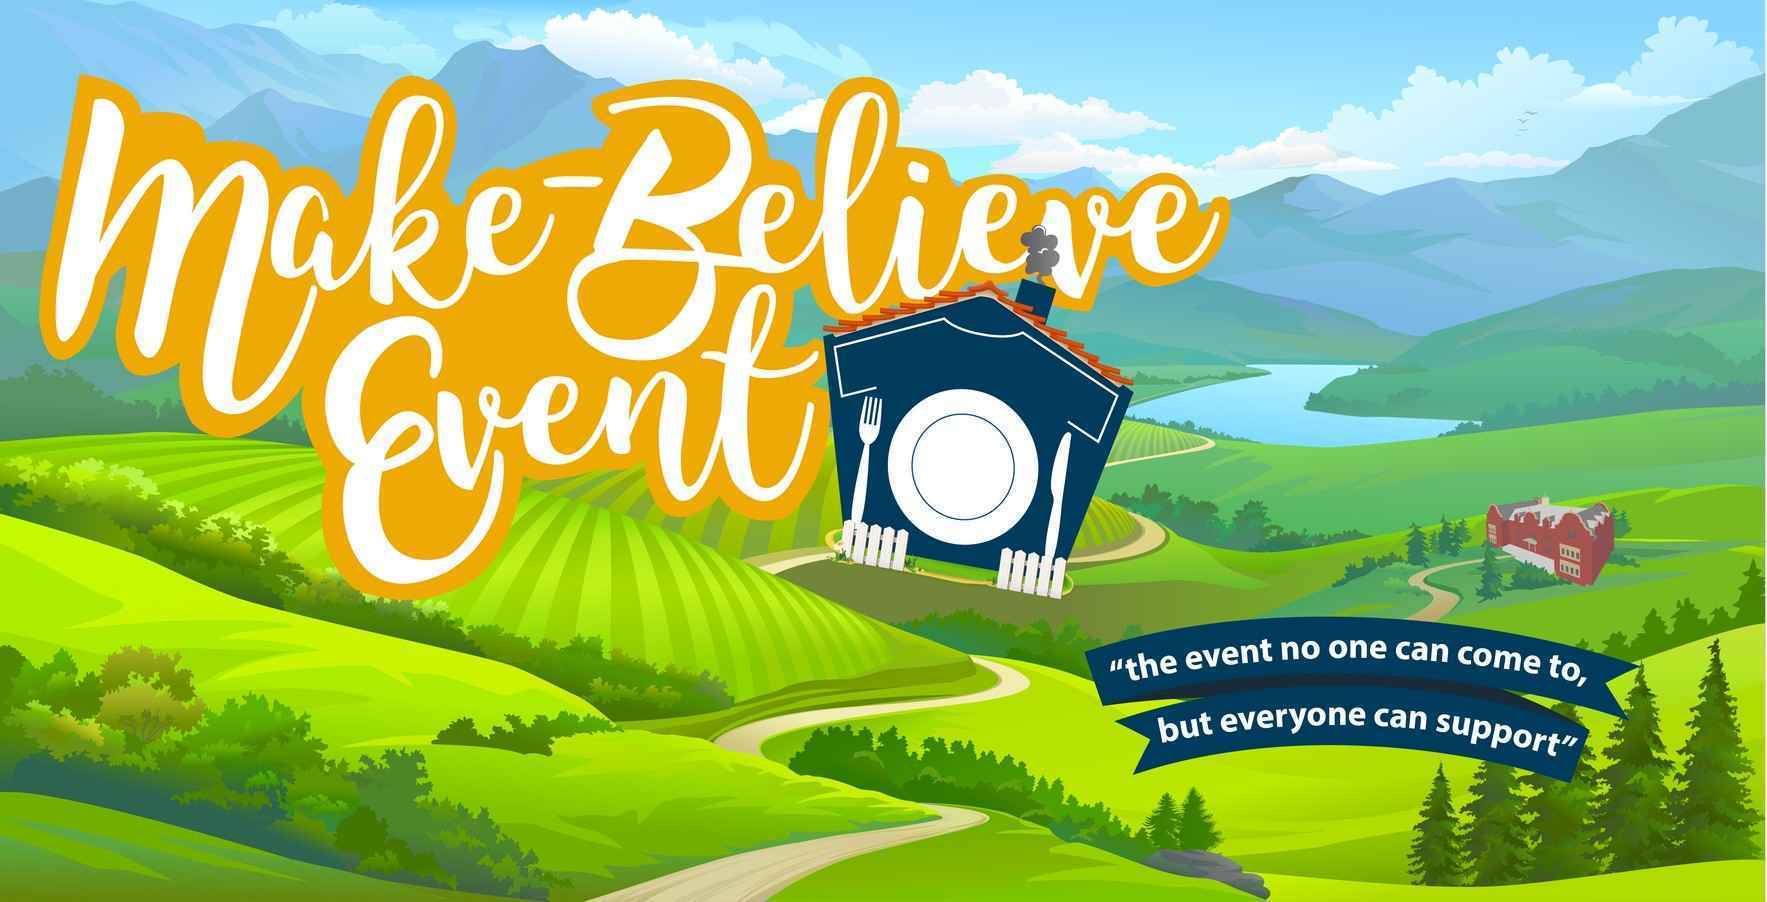 Providence Ministries' Make-Believe Event image